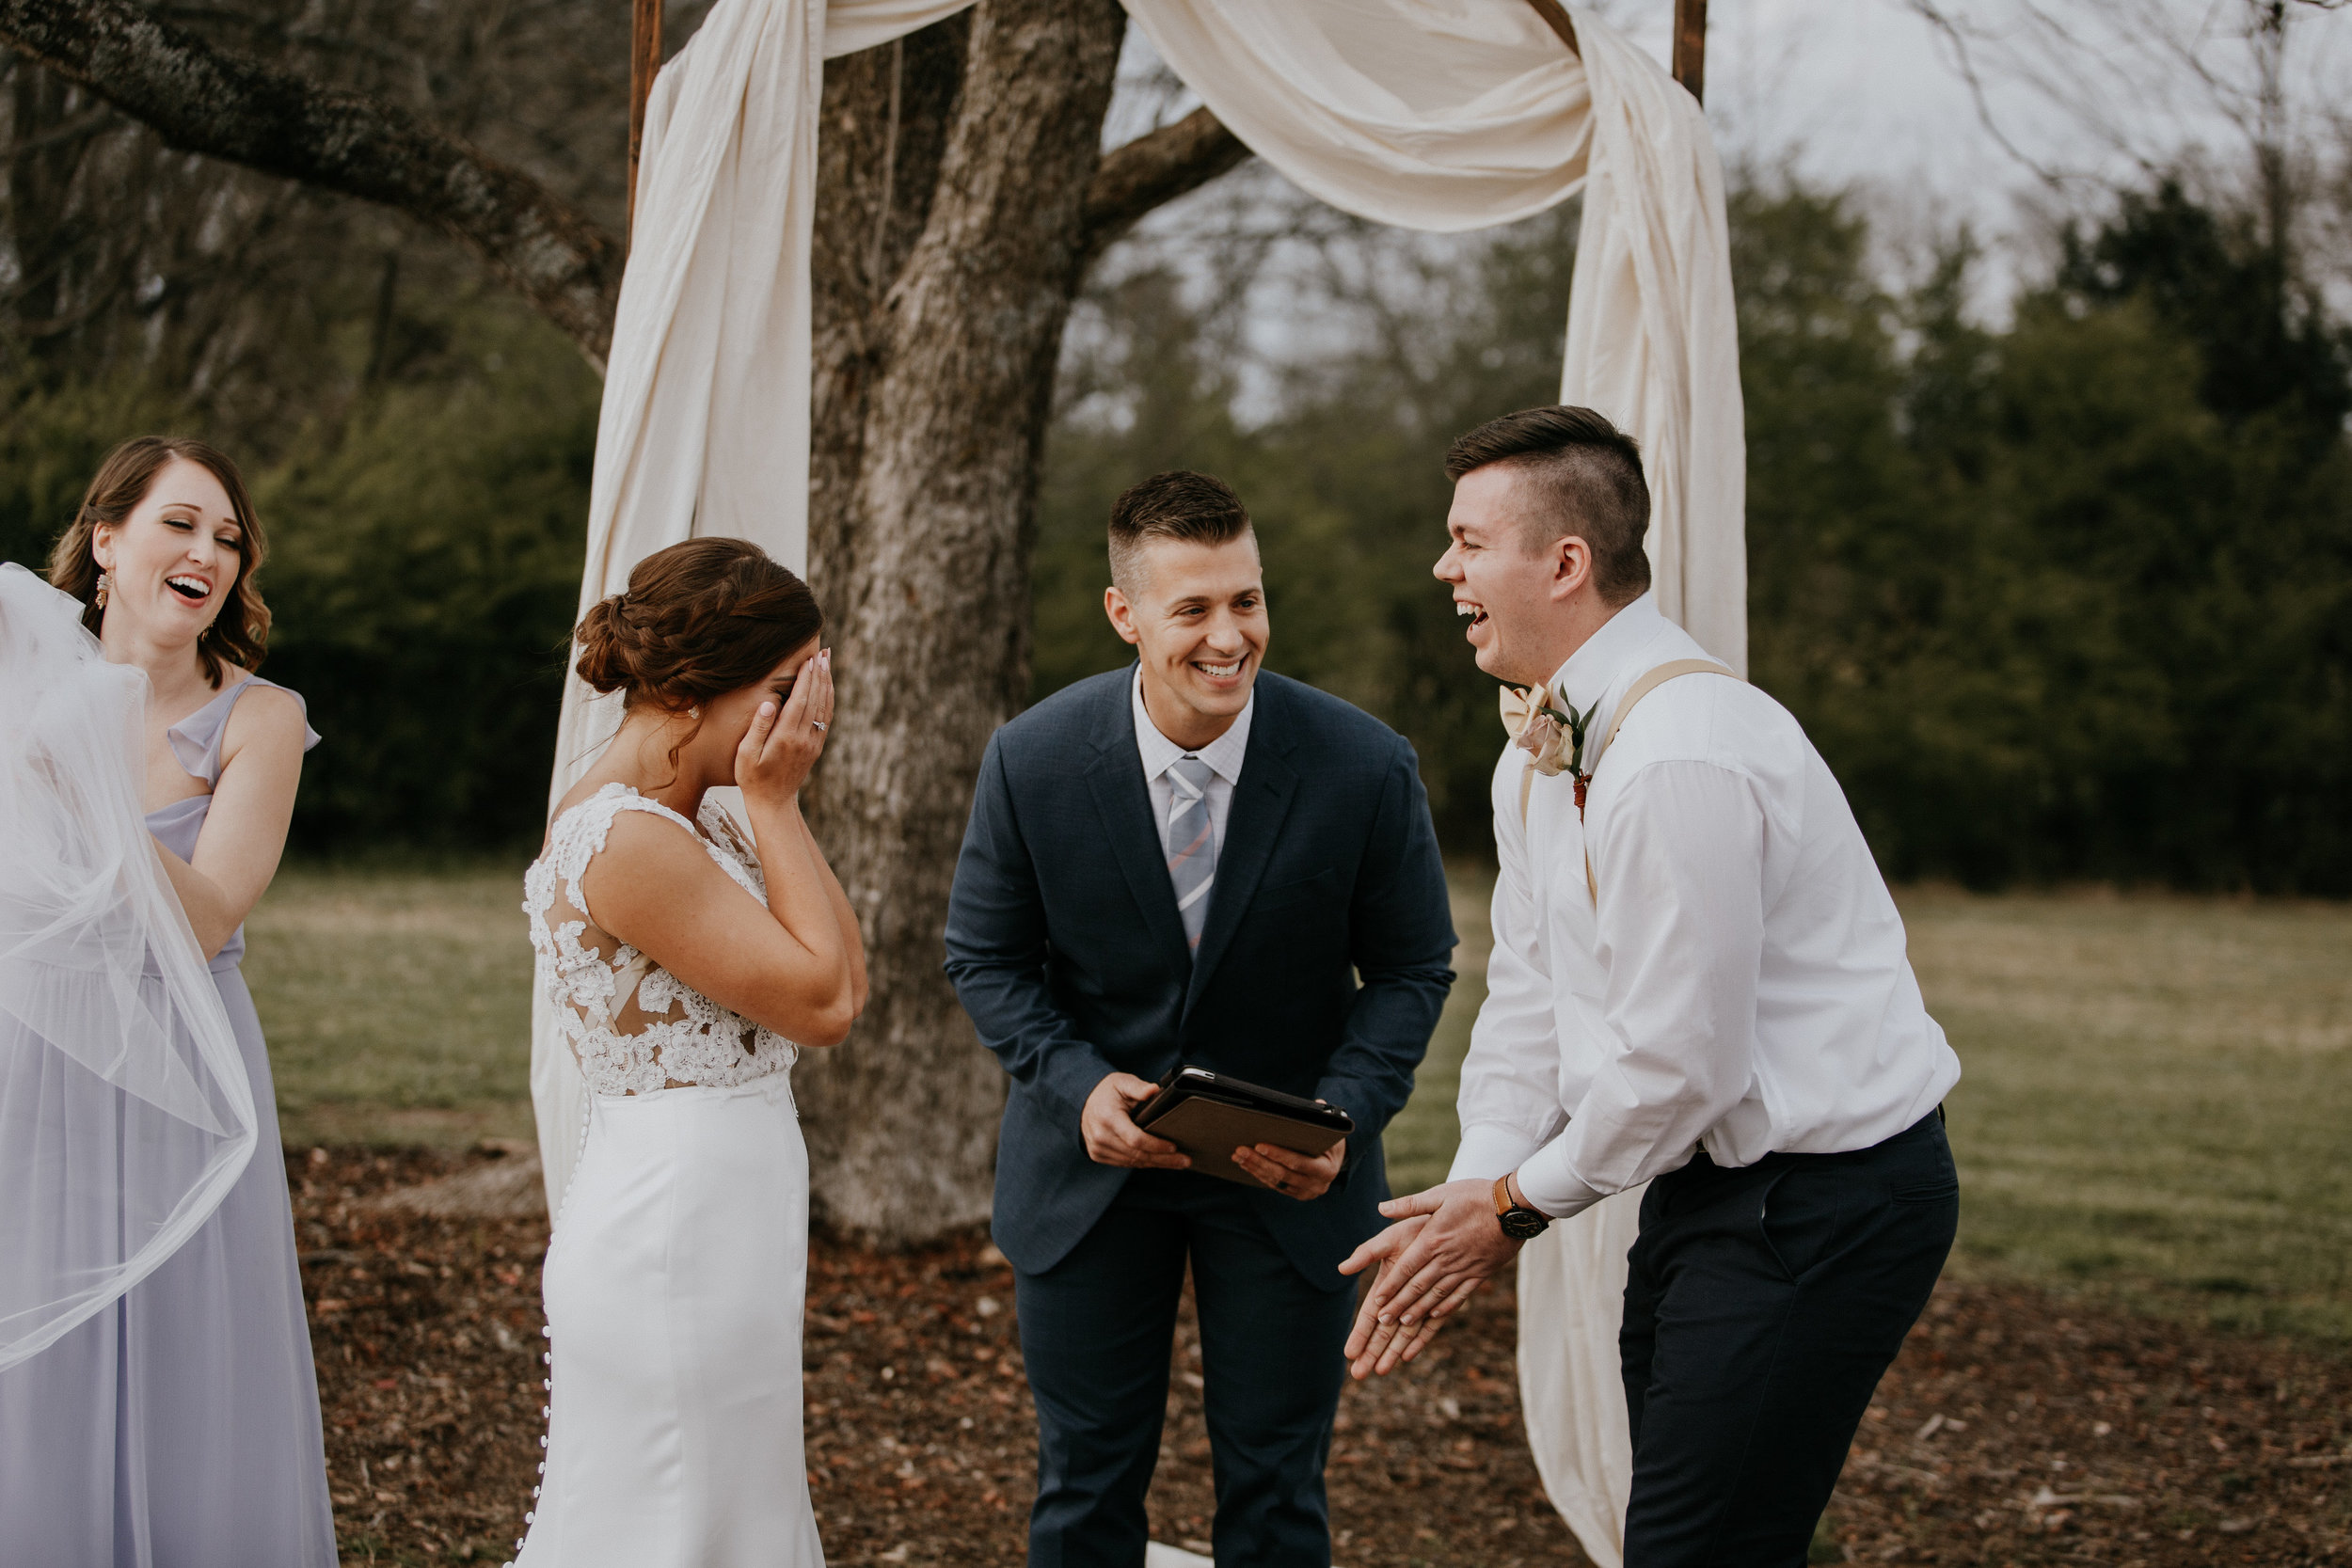 Outdoor wedding ceremony at Pepper Sprout Barn, picture by Brooke Miller Photography